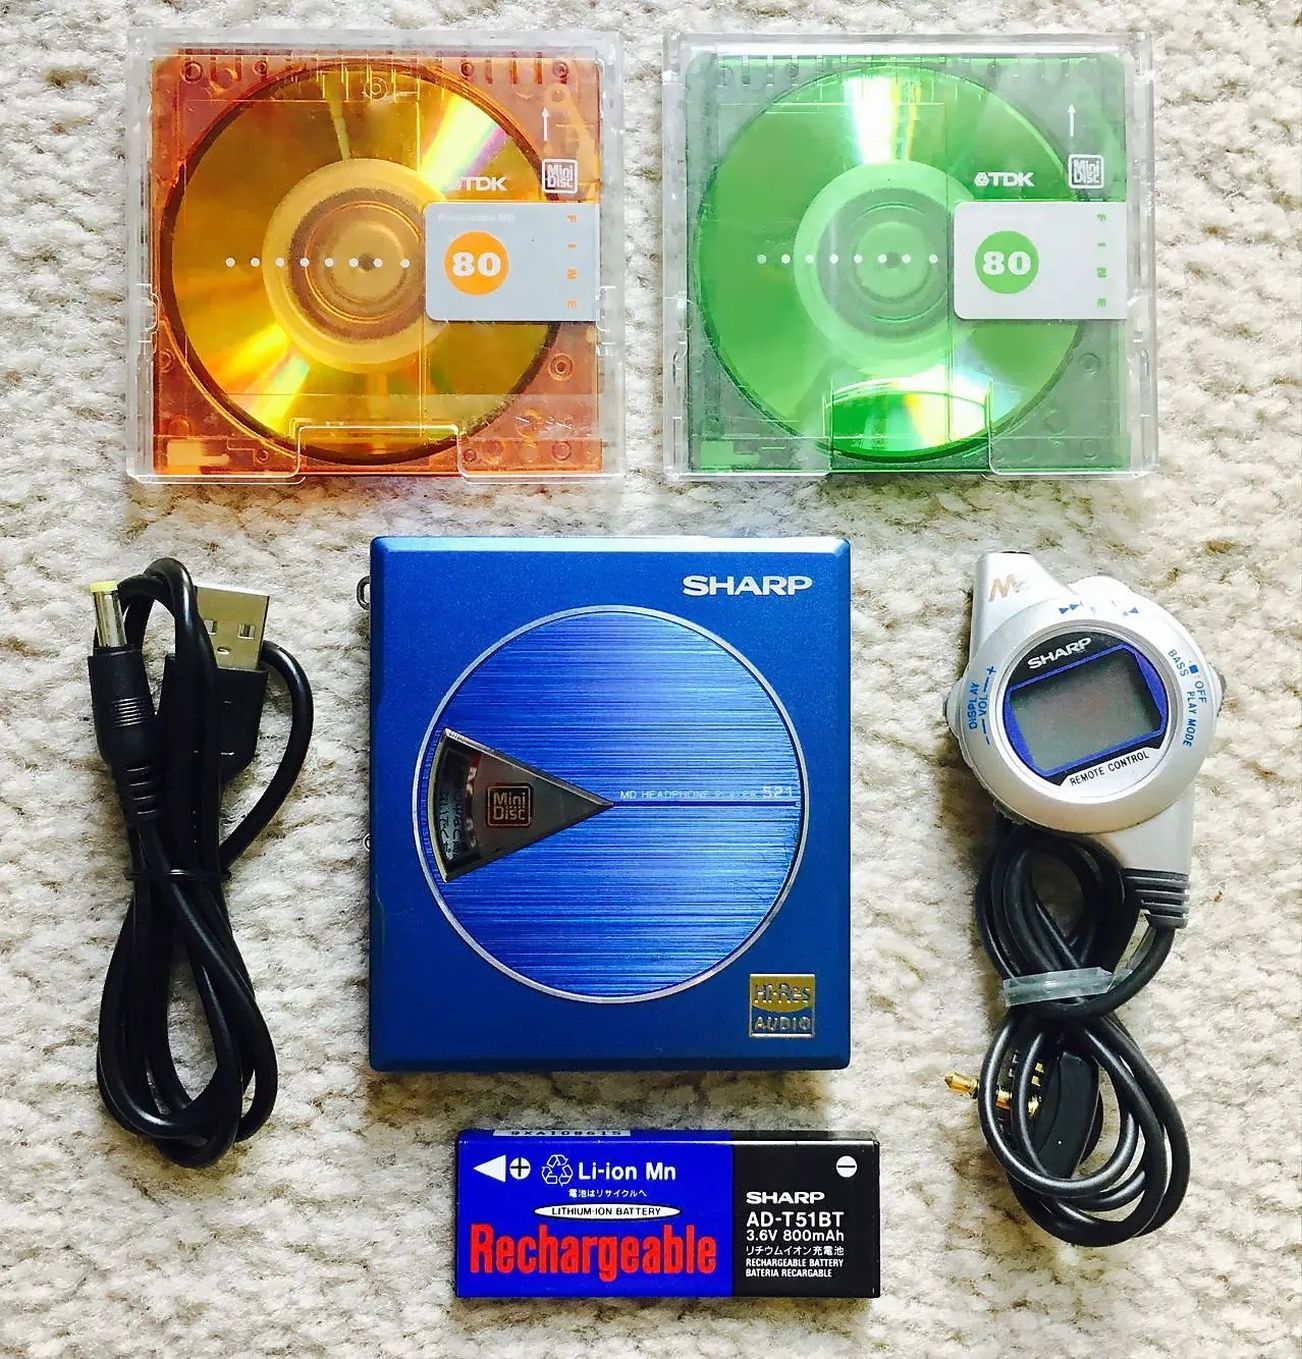 0416-sharp-minidisc-WWW-images